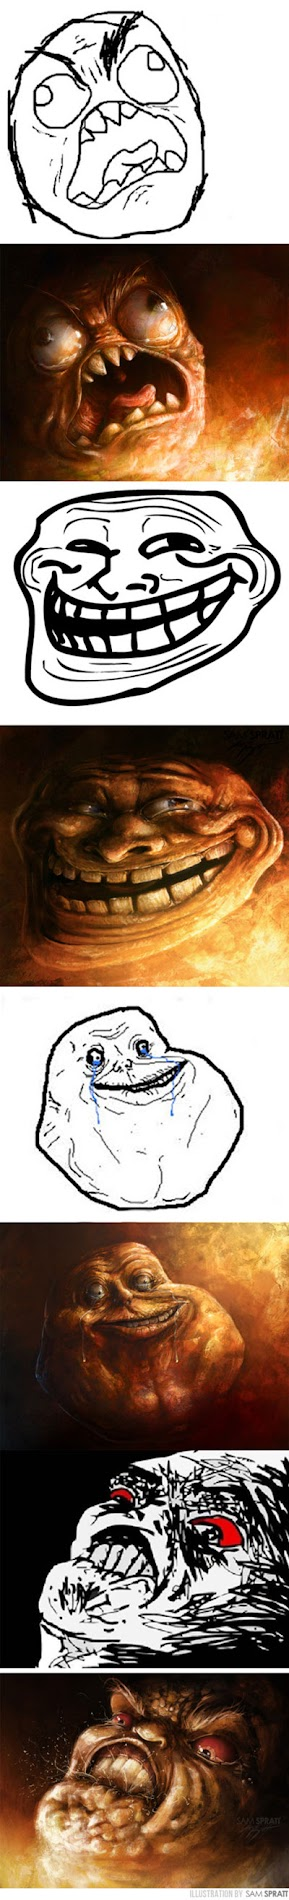 rage faces evolved